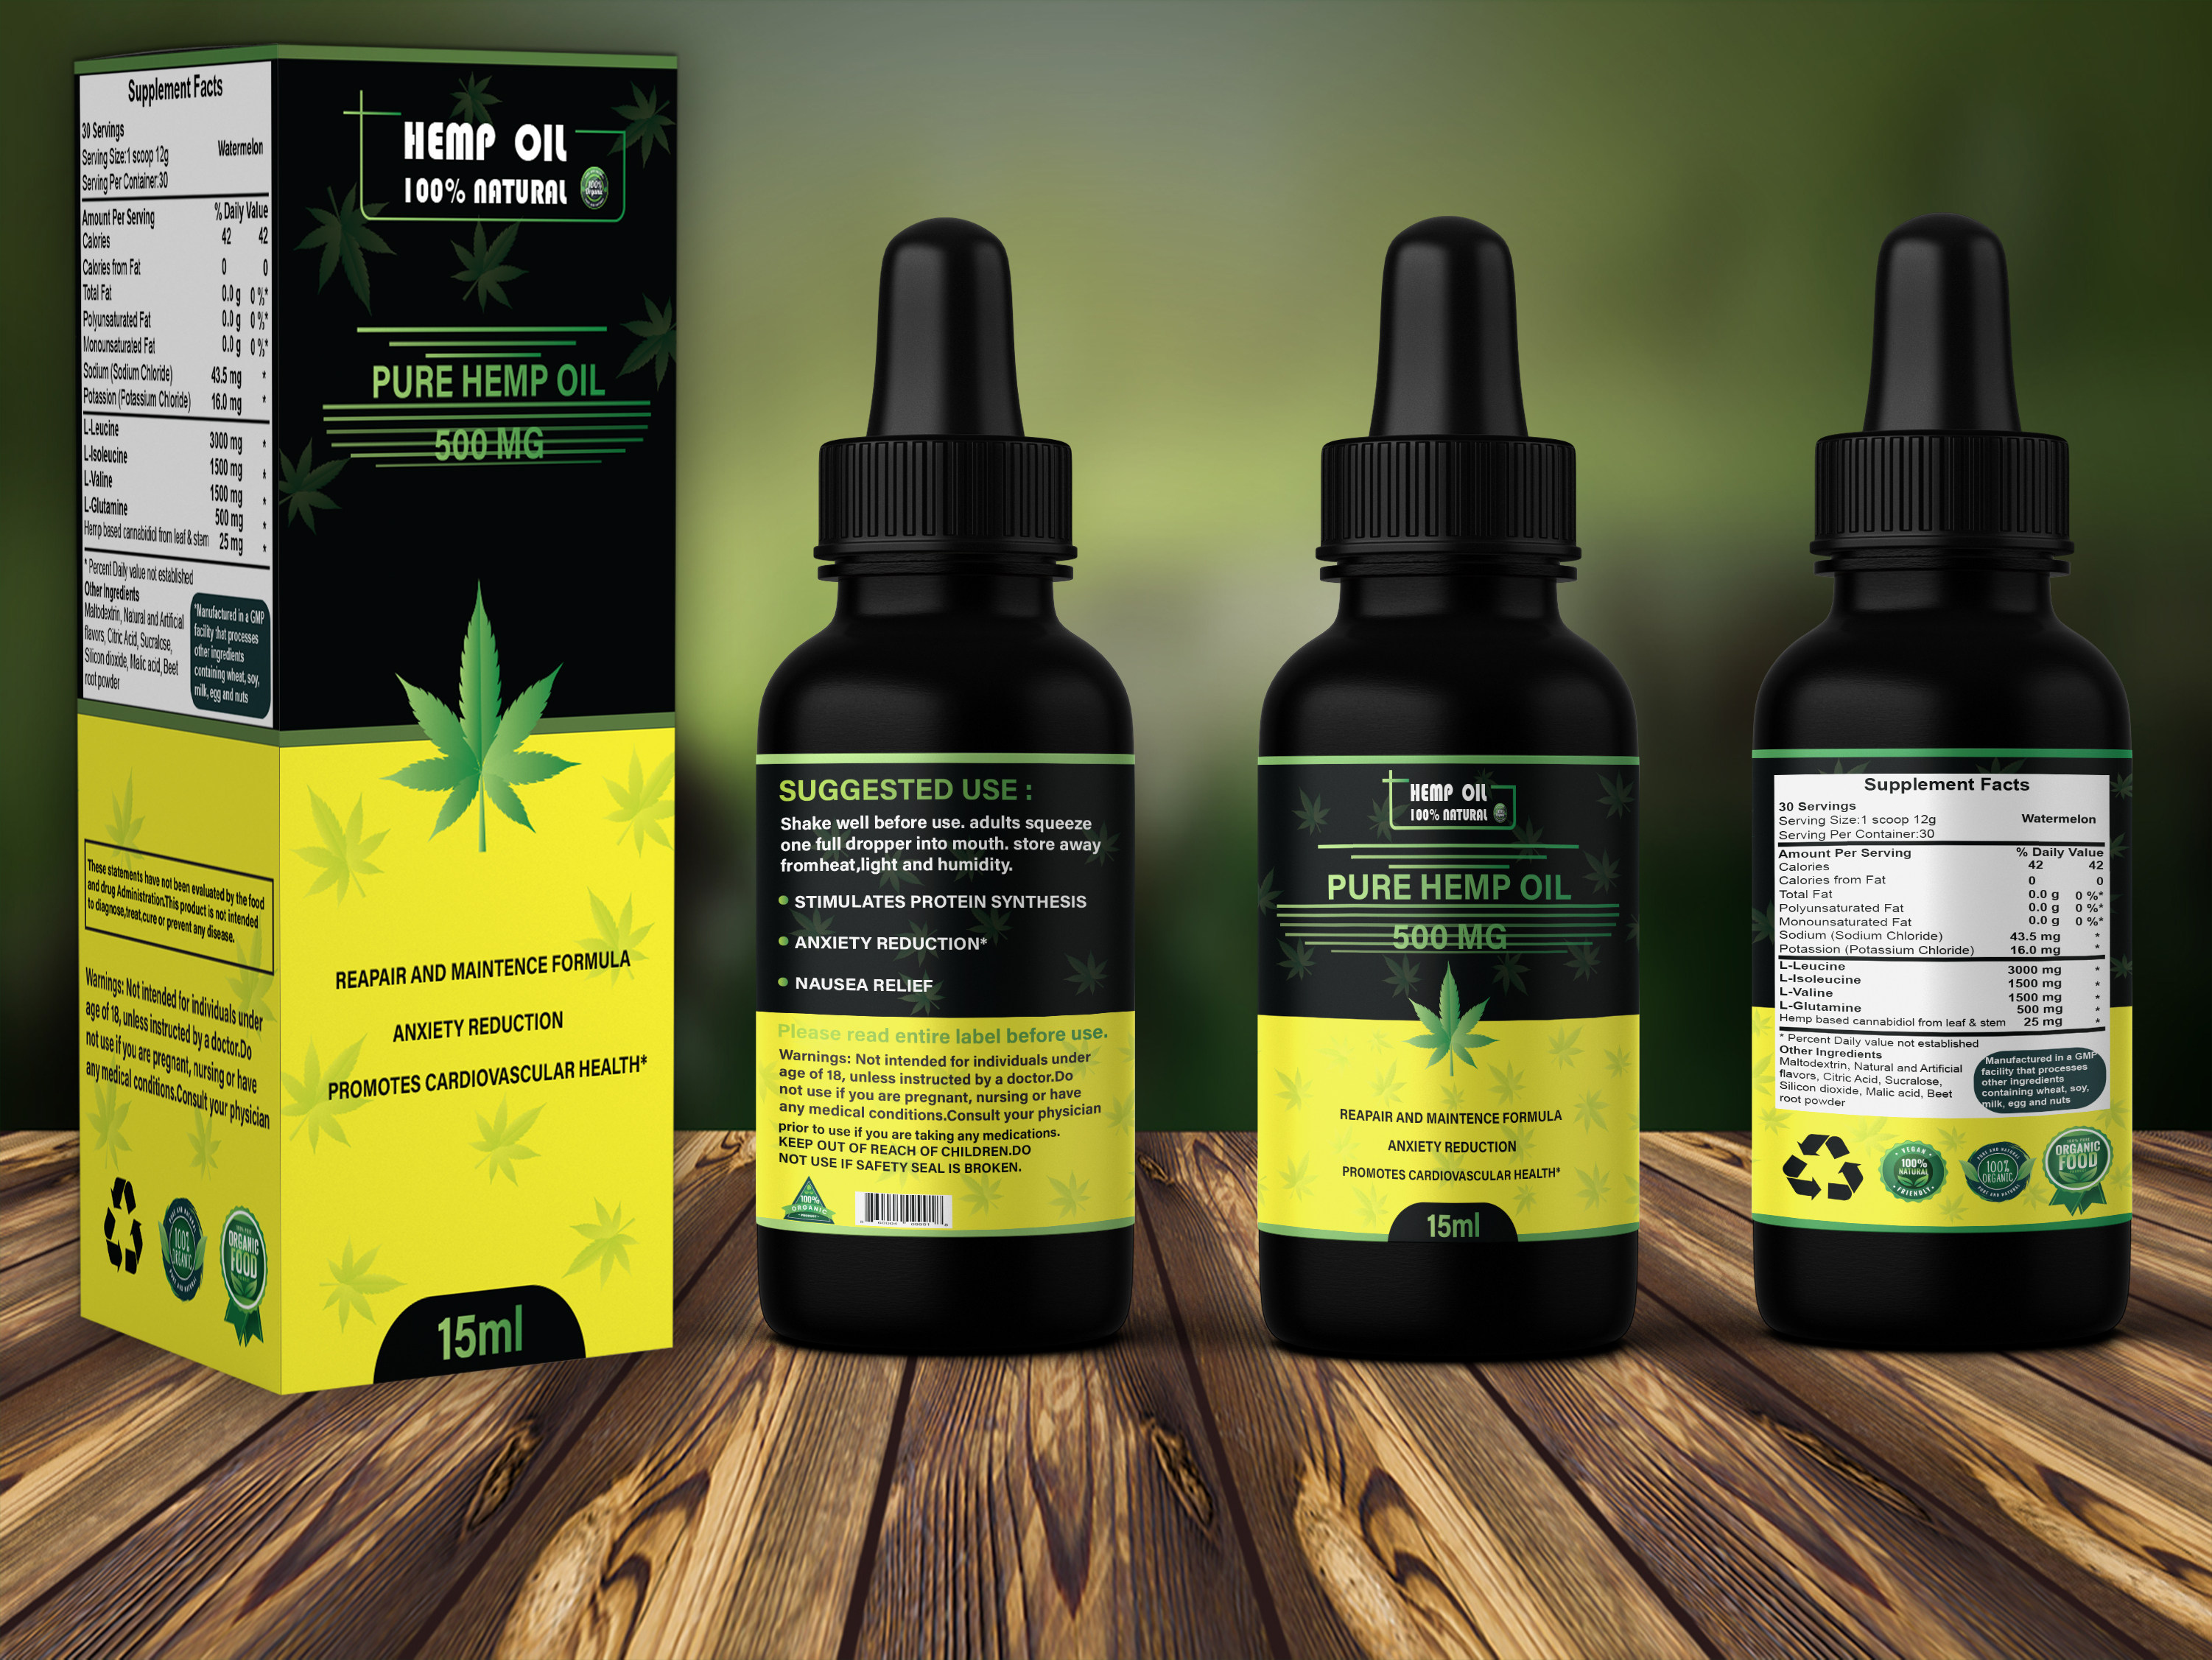 I will create label design, cbd label, hemp label, bottle label and product packaging